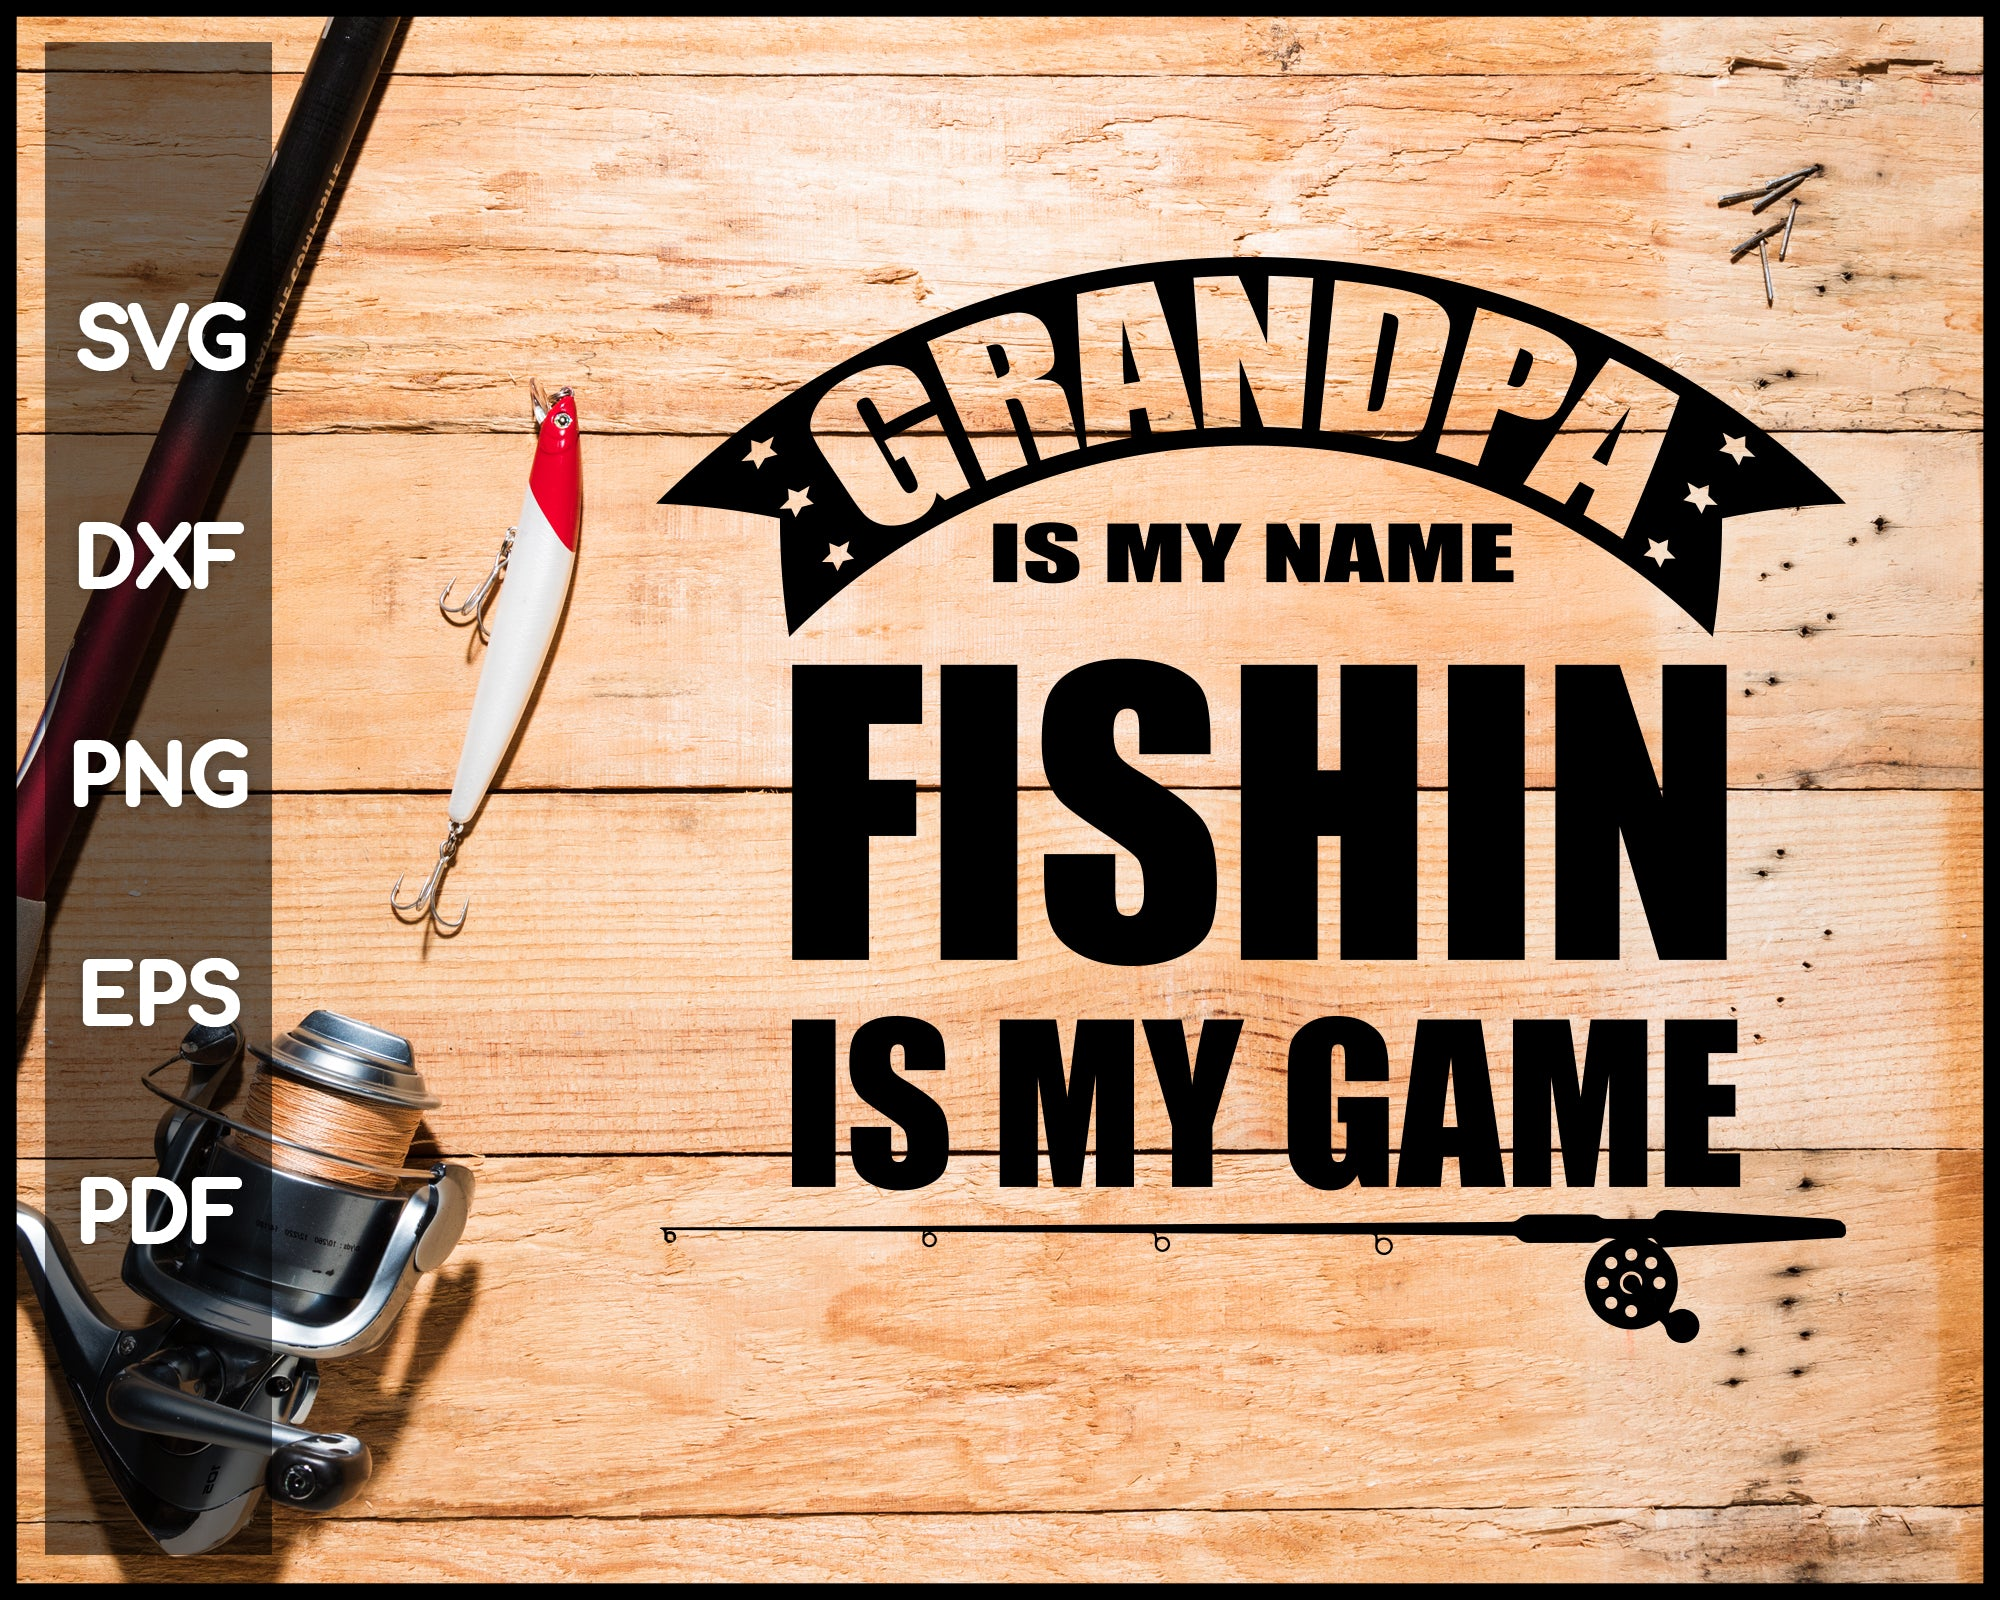 Grandpa is my name fishing is my game svg png Silhouette Designs For Cricut And Printable Files